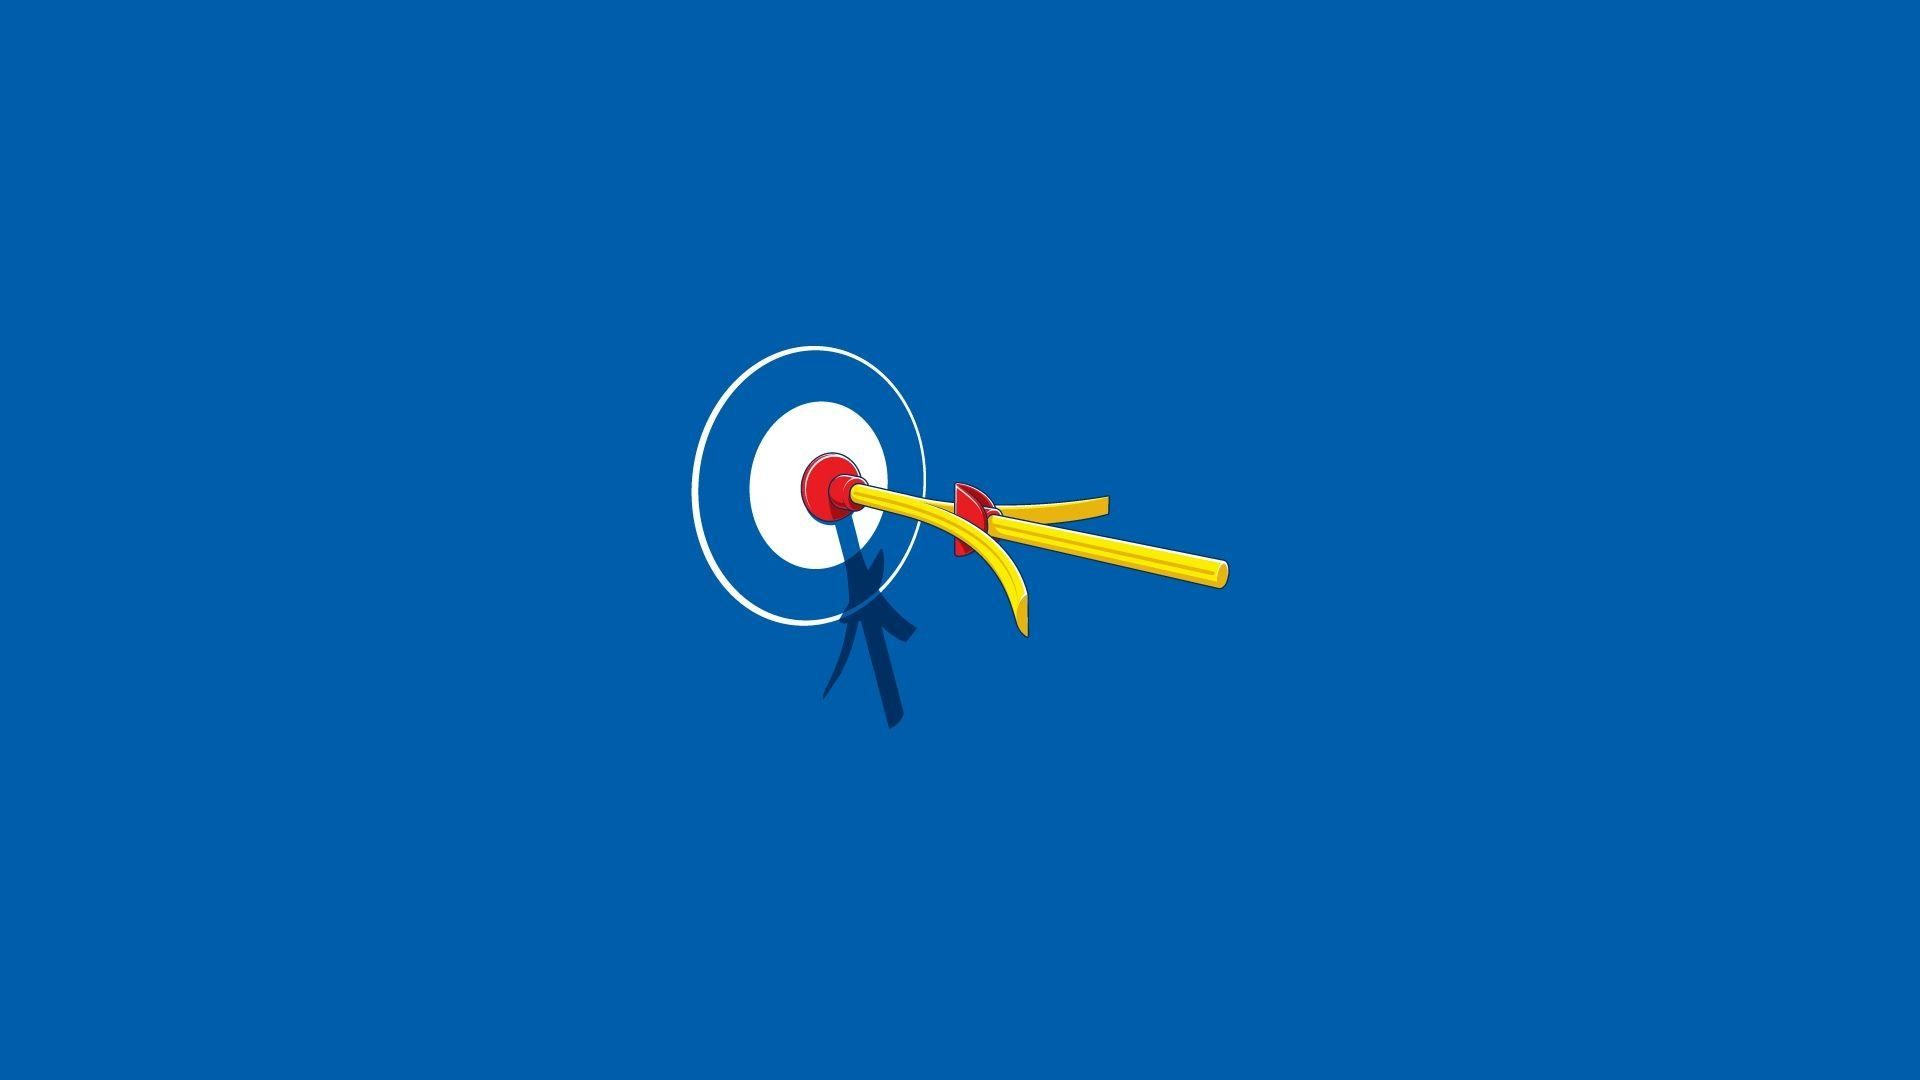 Wallpapers For > Archery Wallpaper